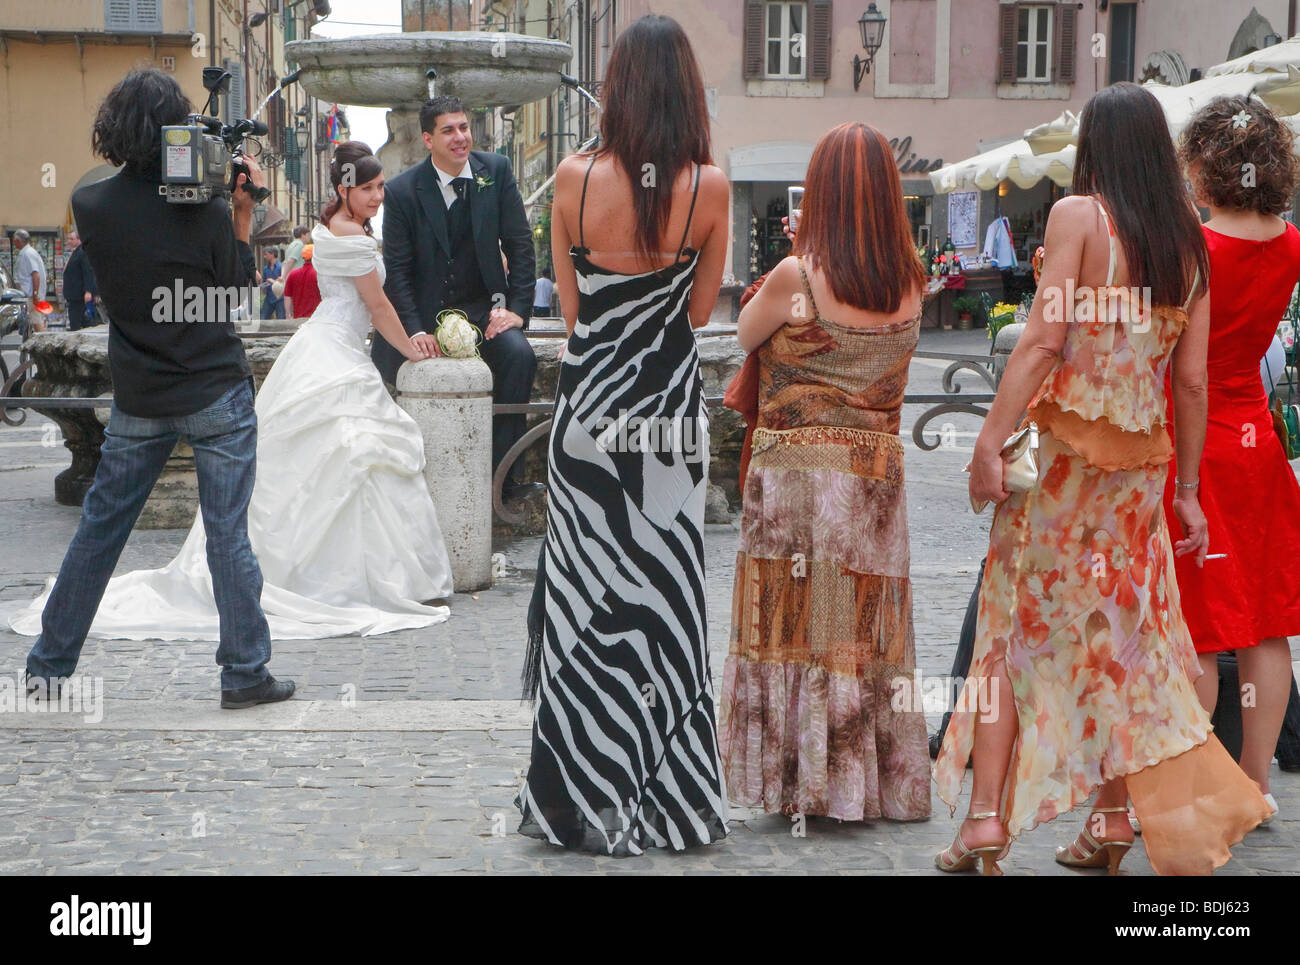 Castel Gandolfo, Piazza della Liberta fountain. lady guests and photographer watch the wedding couple - Stock Image